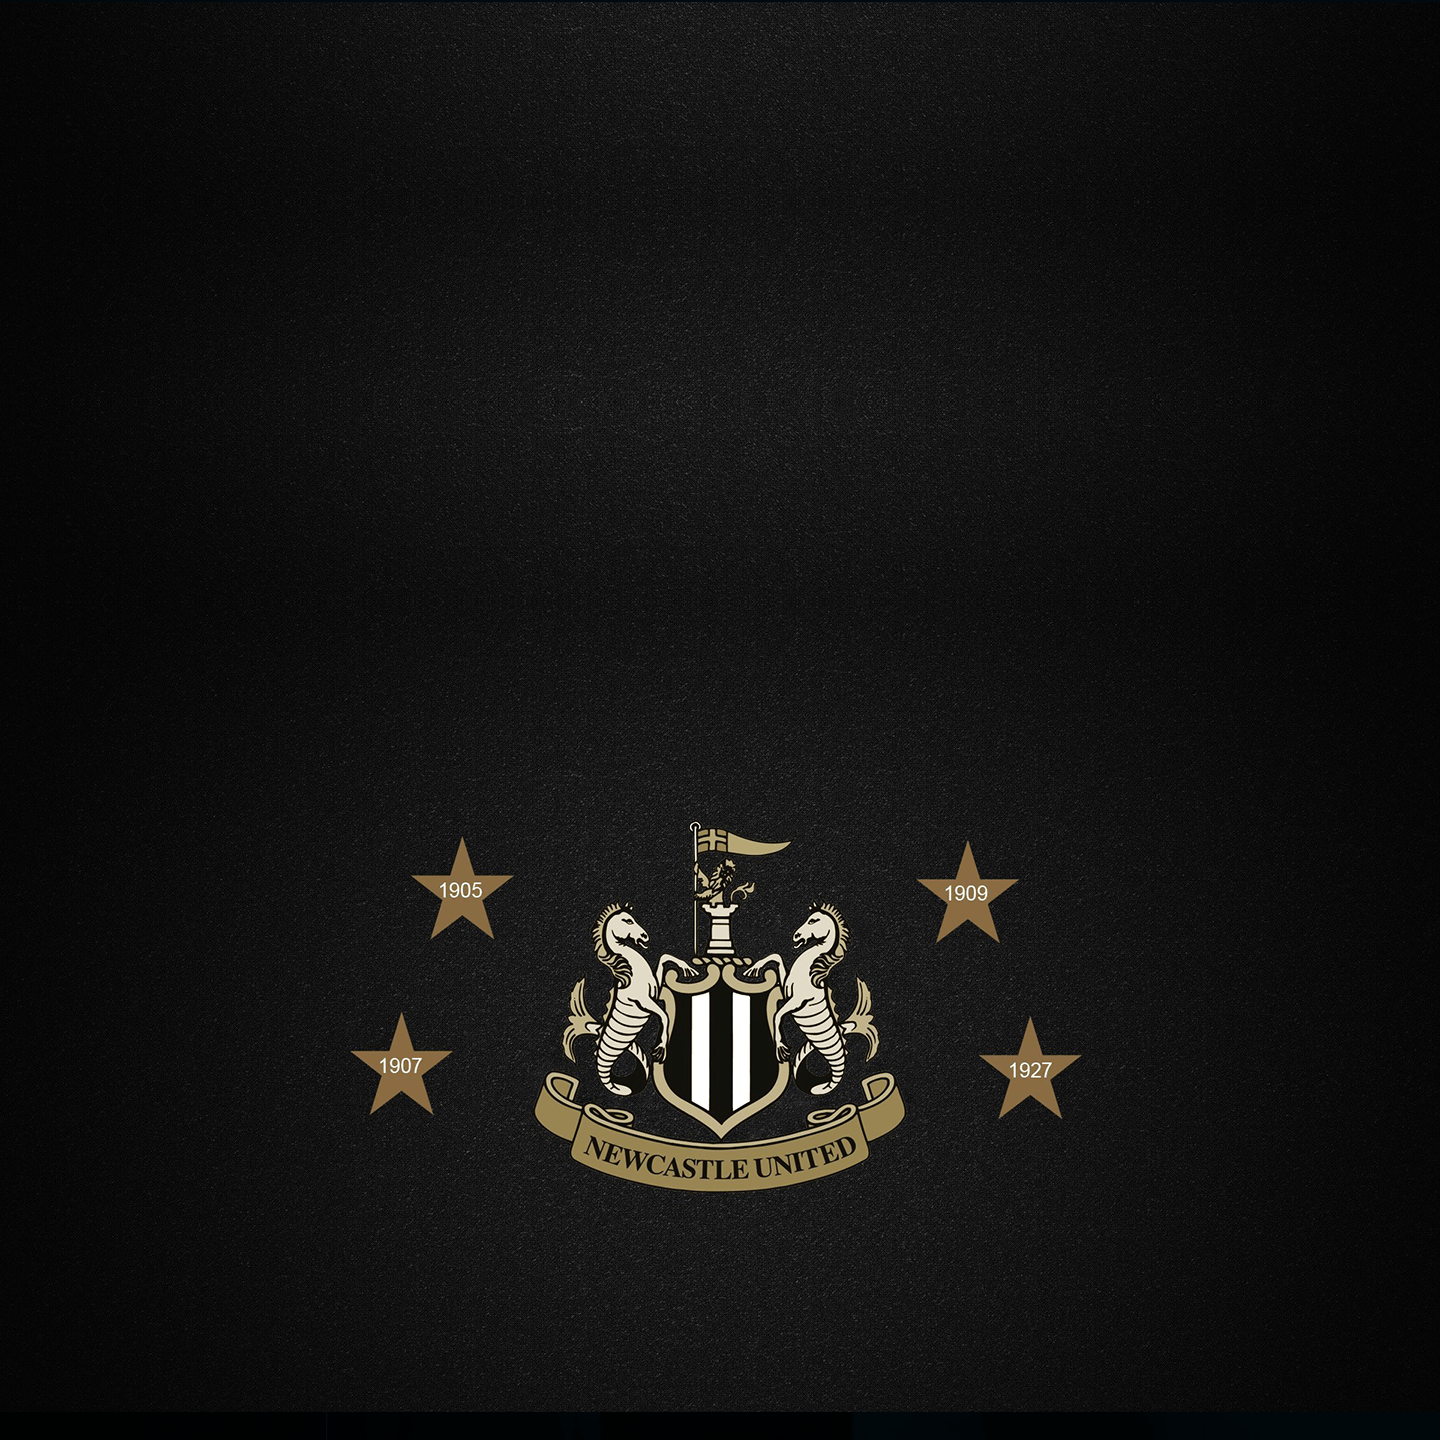 OS10] Newcastle united wallpaper | Blackberry Theme & Wallpapers